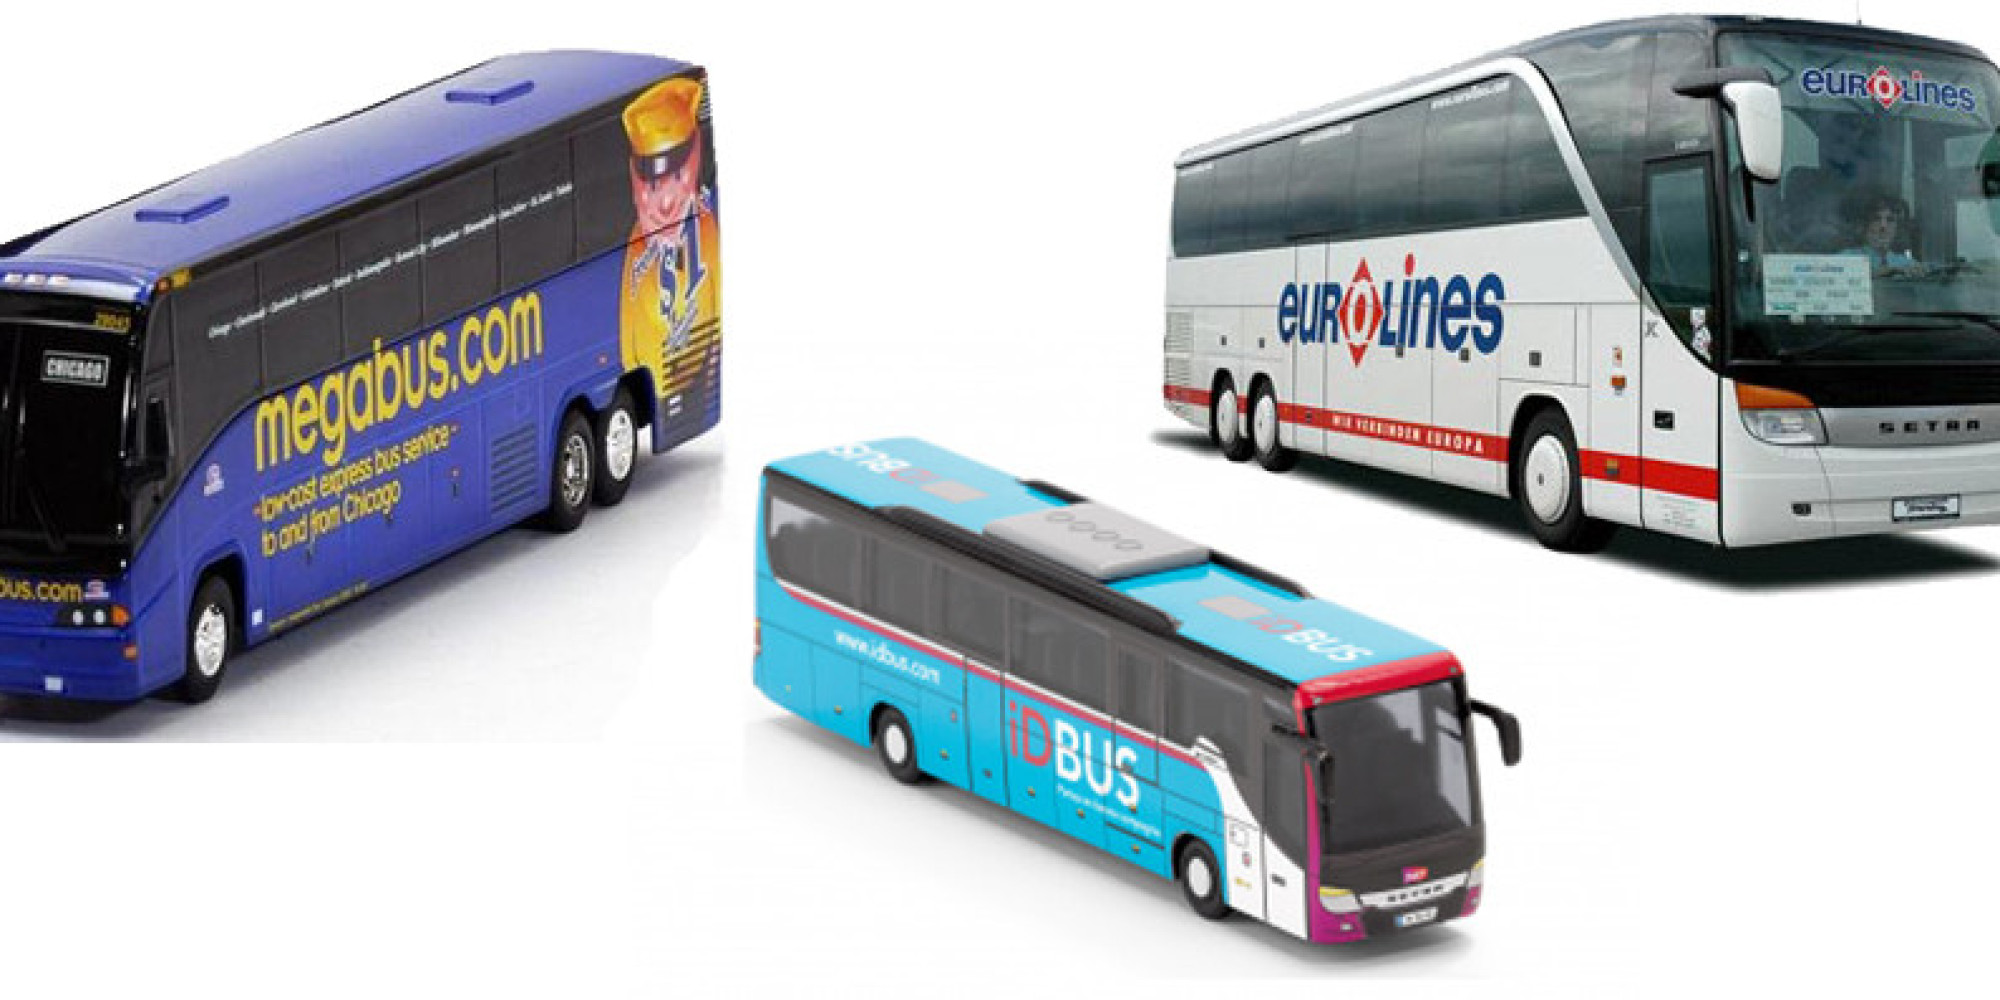 trajets en bus eurolines idbus megabus la guerre des bus est d j d clar e. Black Bedroom Furniture Sets. Home Design Ideas